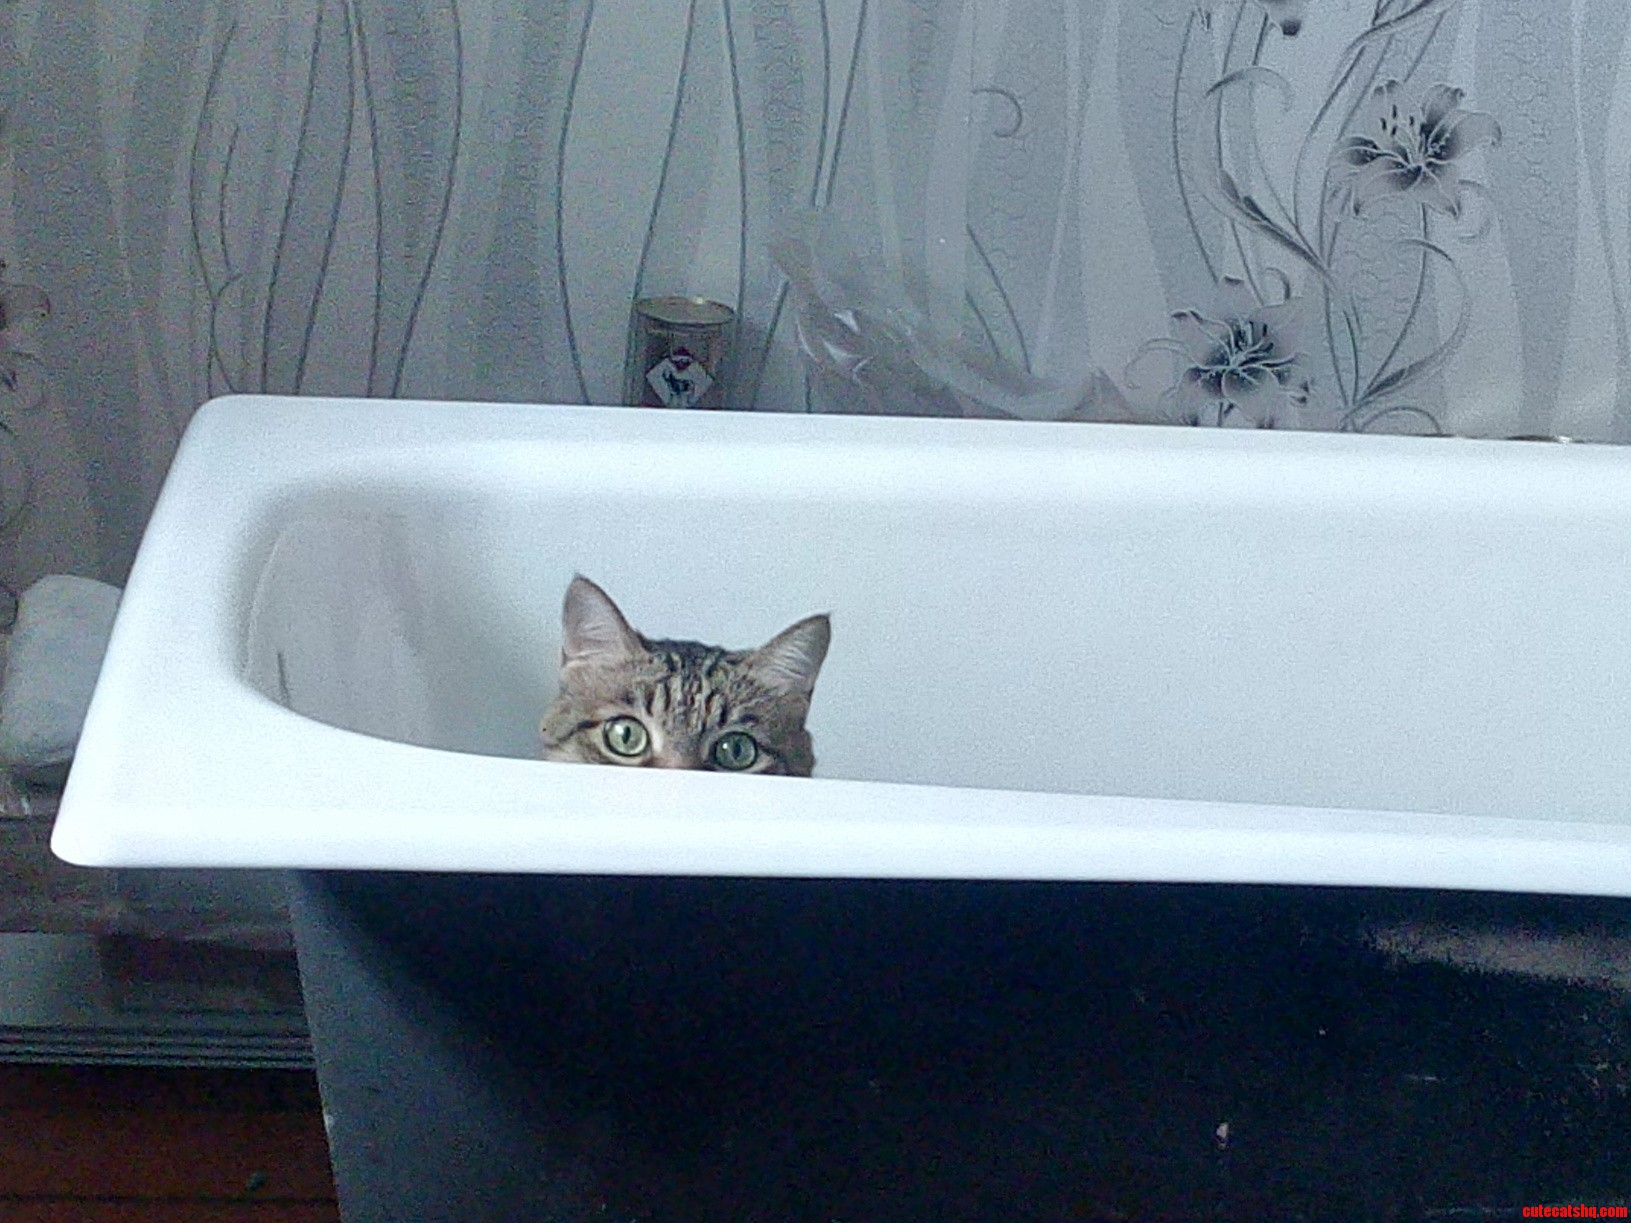 Bought new bathtub recently and boris decided to play with it ...